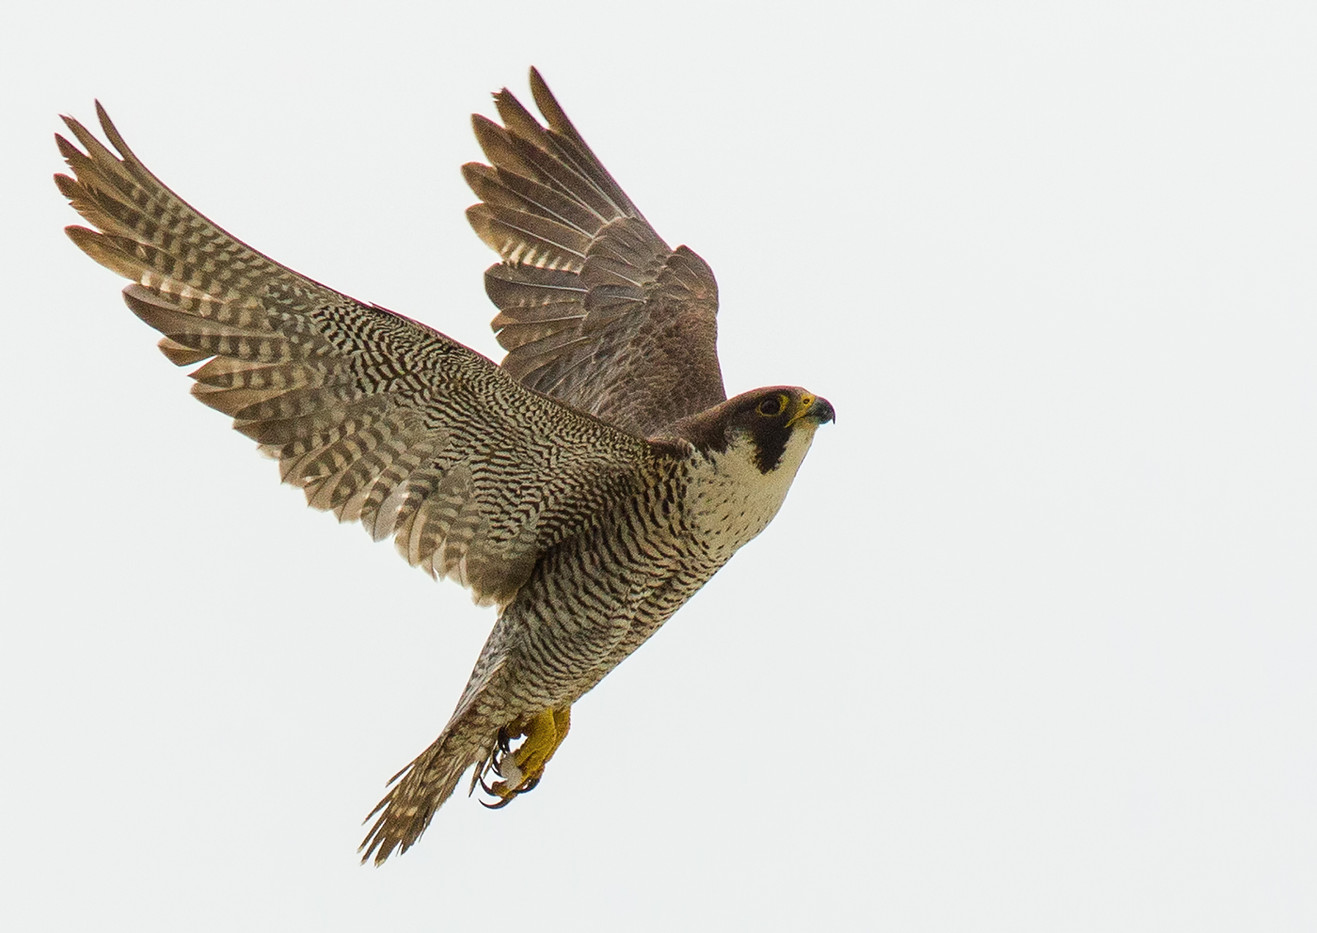 16 PEREGRINE FALCON by Glenn Welch